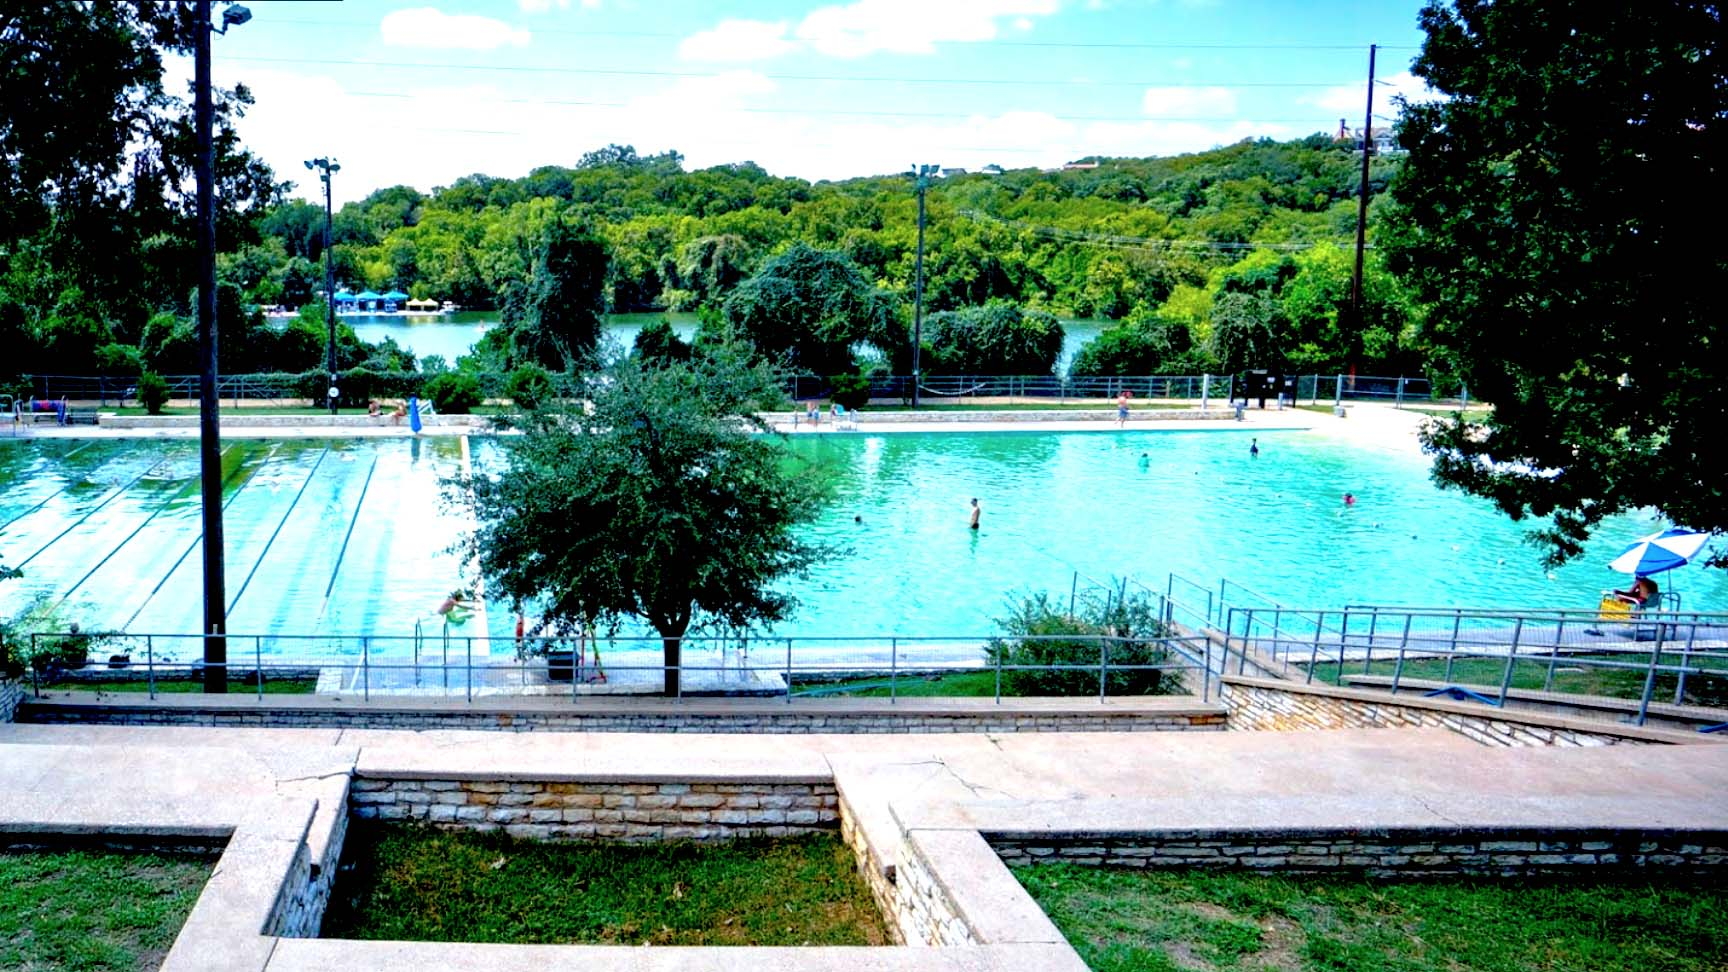 Image of Deep Eddy Pool